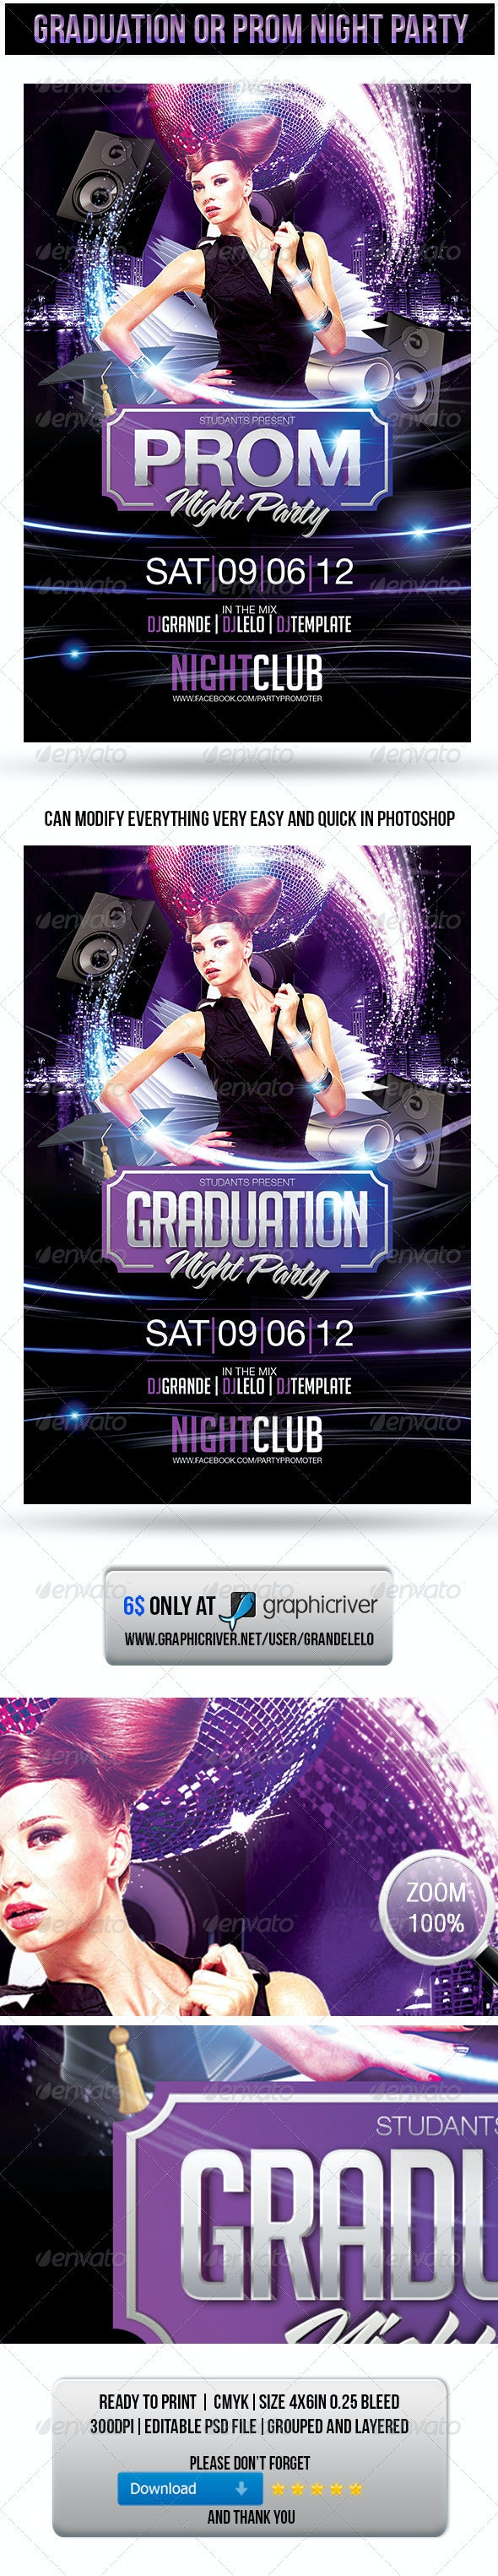 Graduation or Prom Night Party Flyer - Clubs & Parties Events